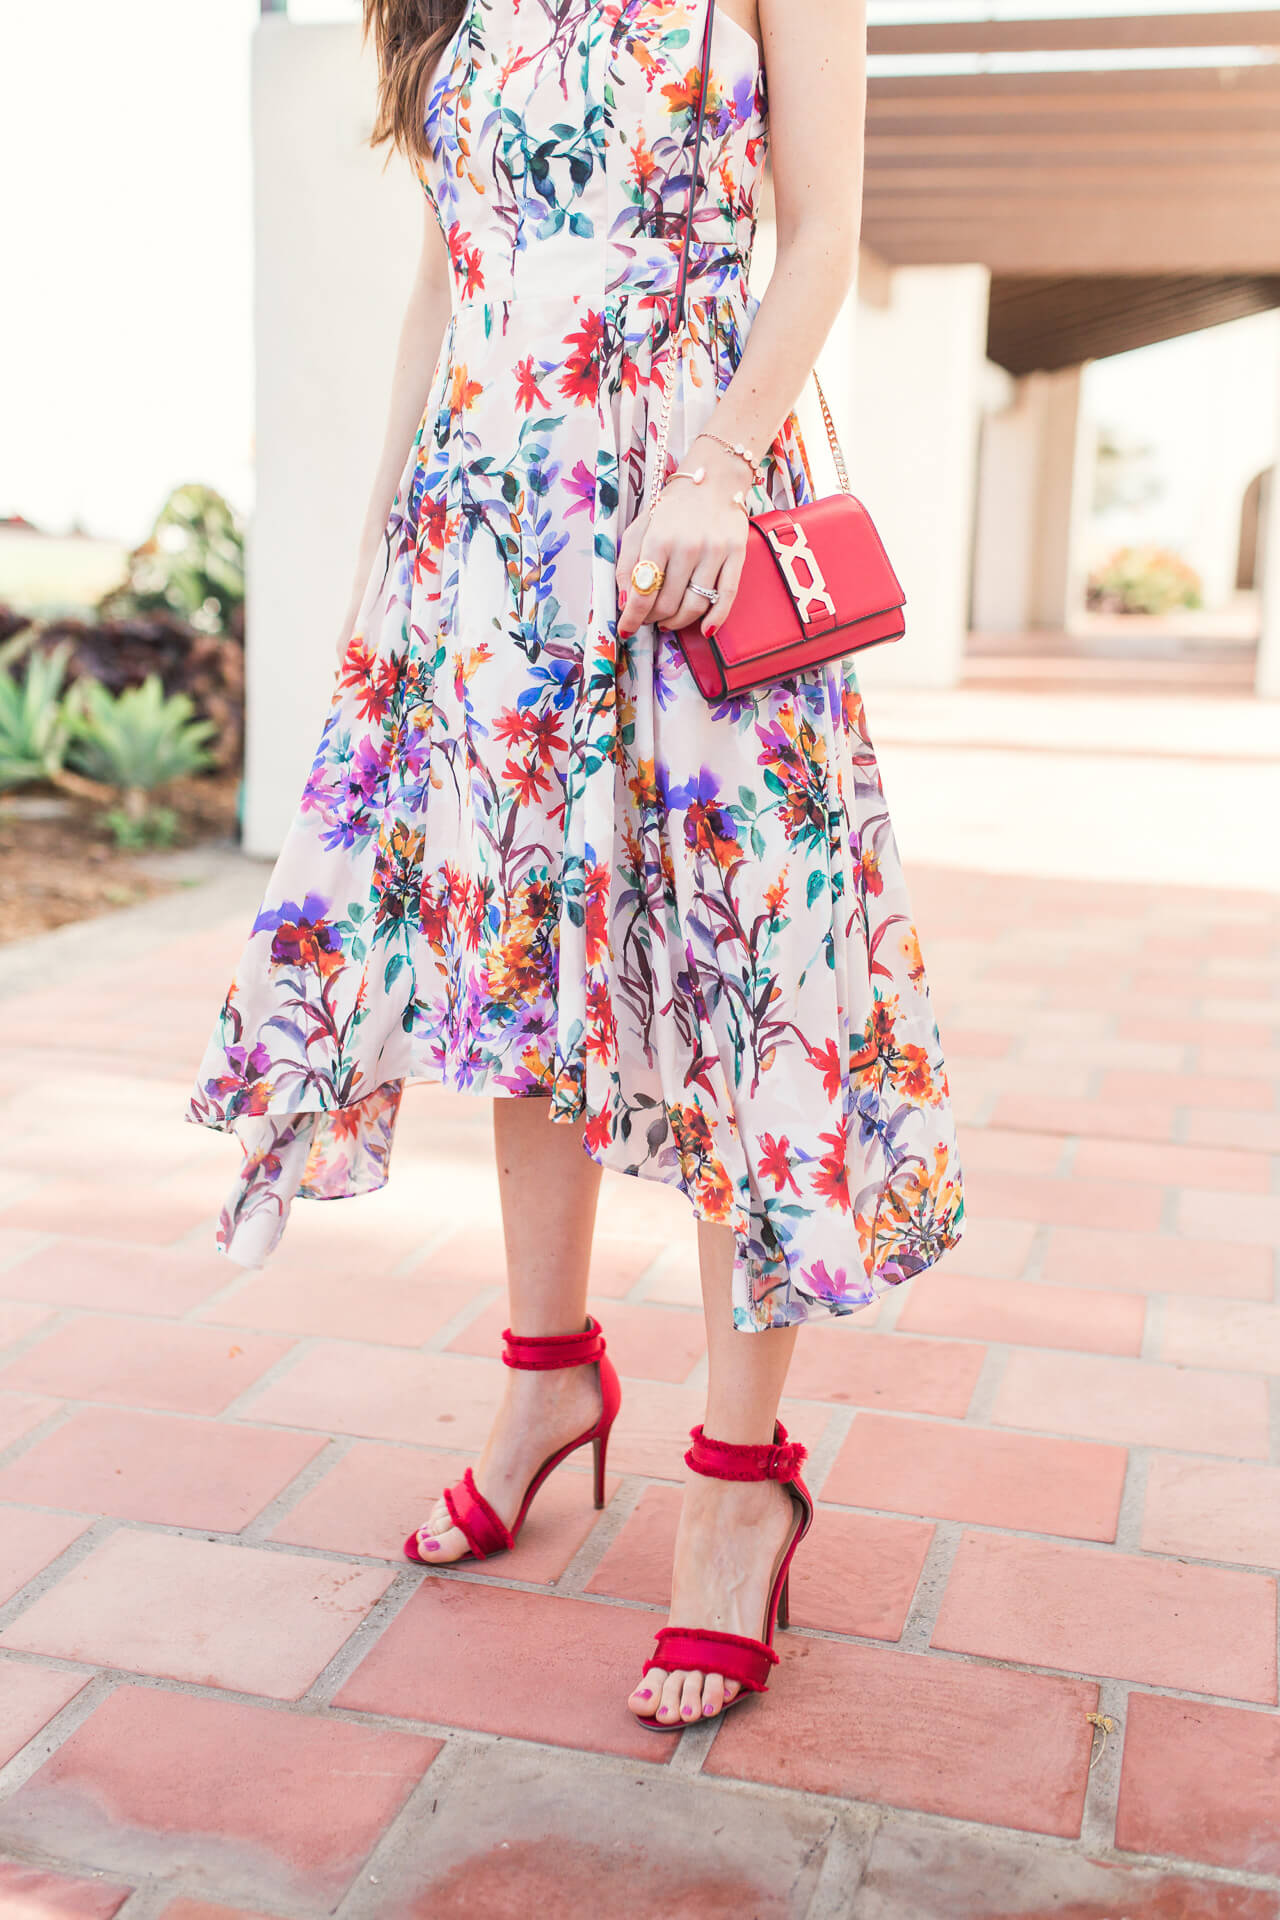 spring outfit inspiration for 2018 with pops of red